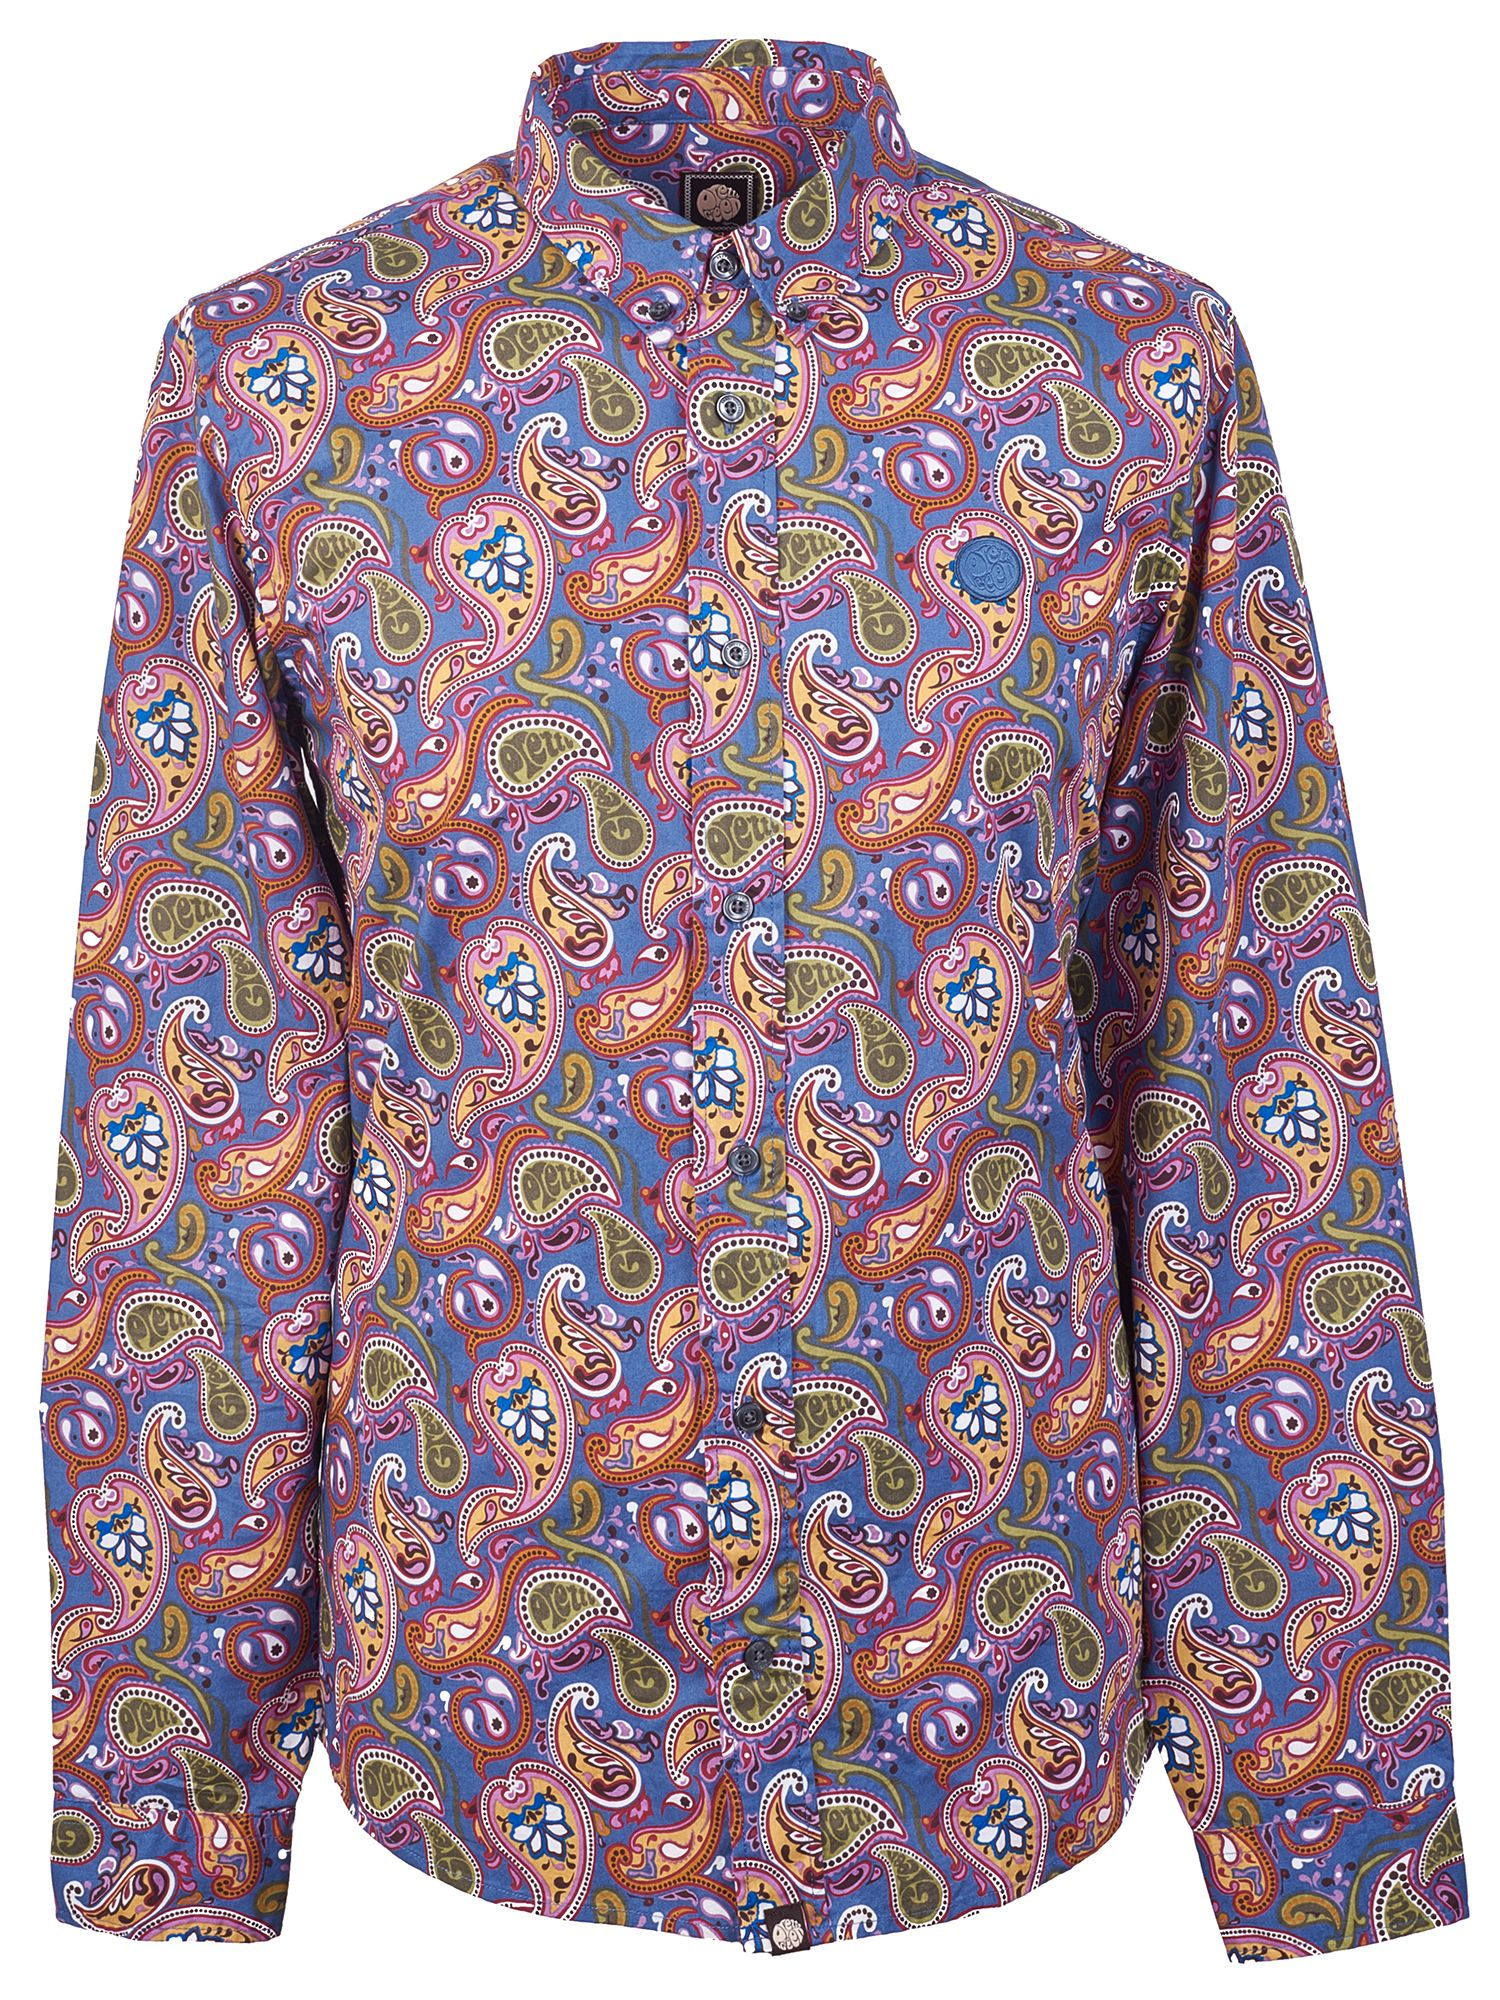 Men's Vintage Style Shirts Mens Pretty Green Slim Fit Paisley Print Shirt Multi-Coloured £70.00 AT vintagedancer.com